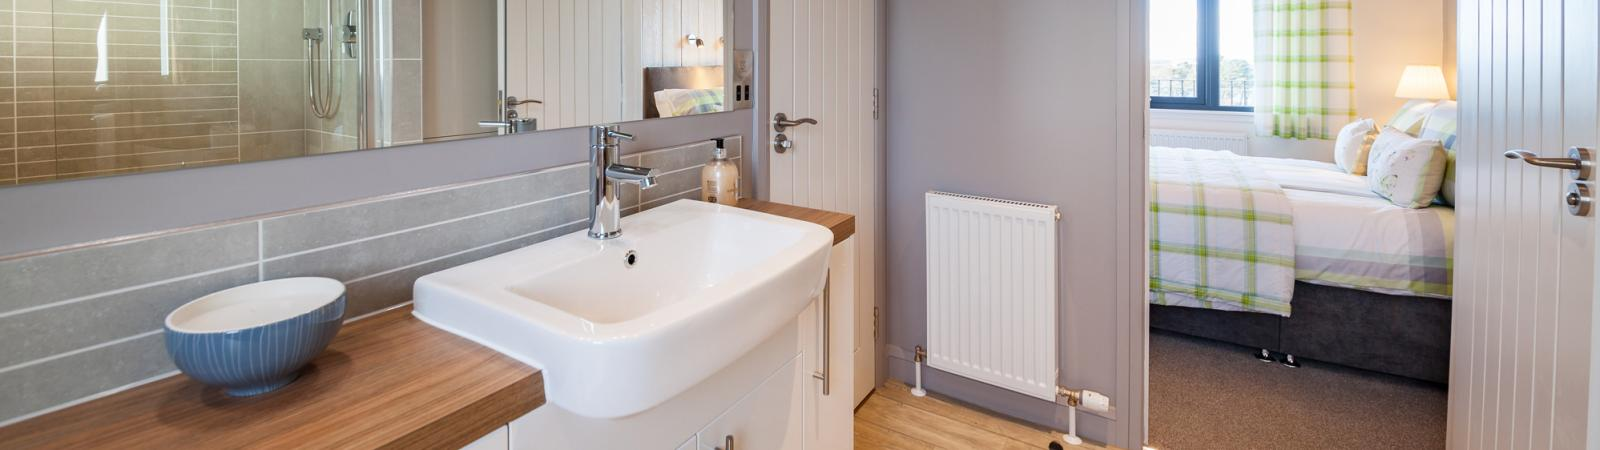 Ensuite bathroom in Barstobrick lodge